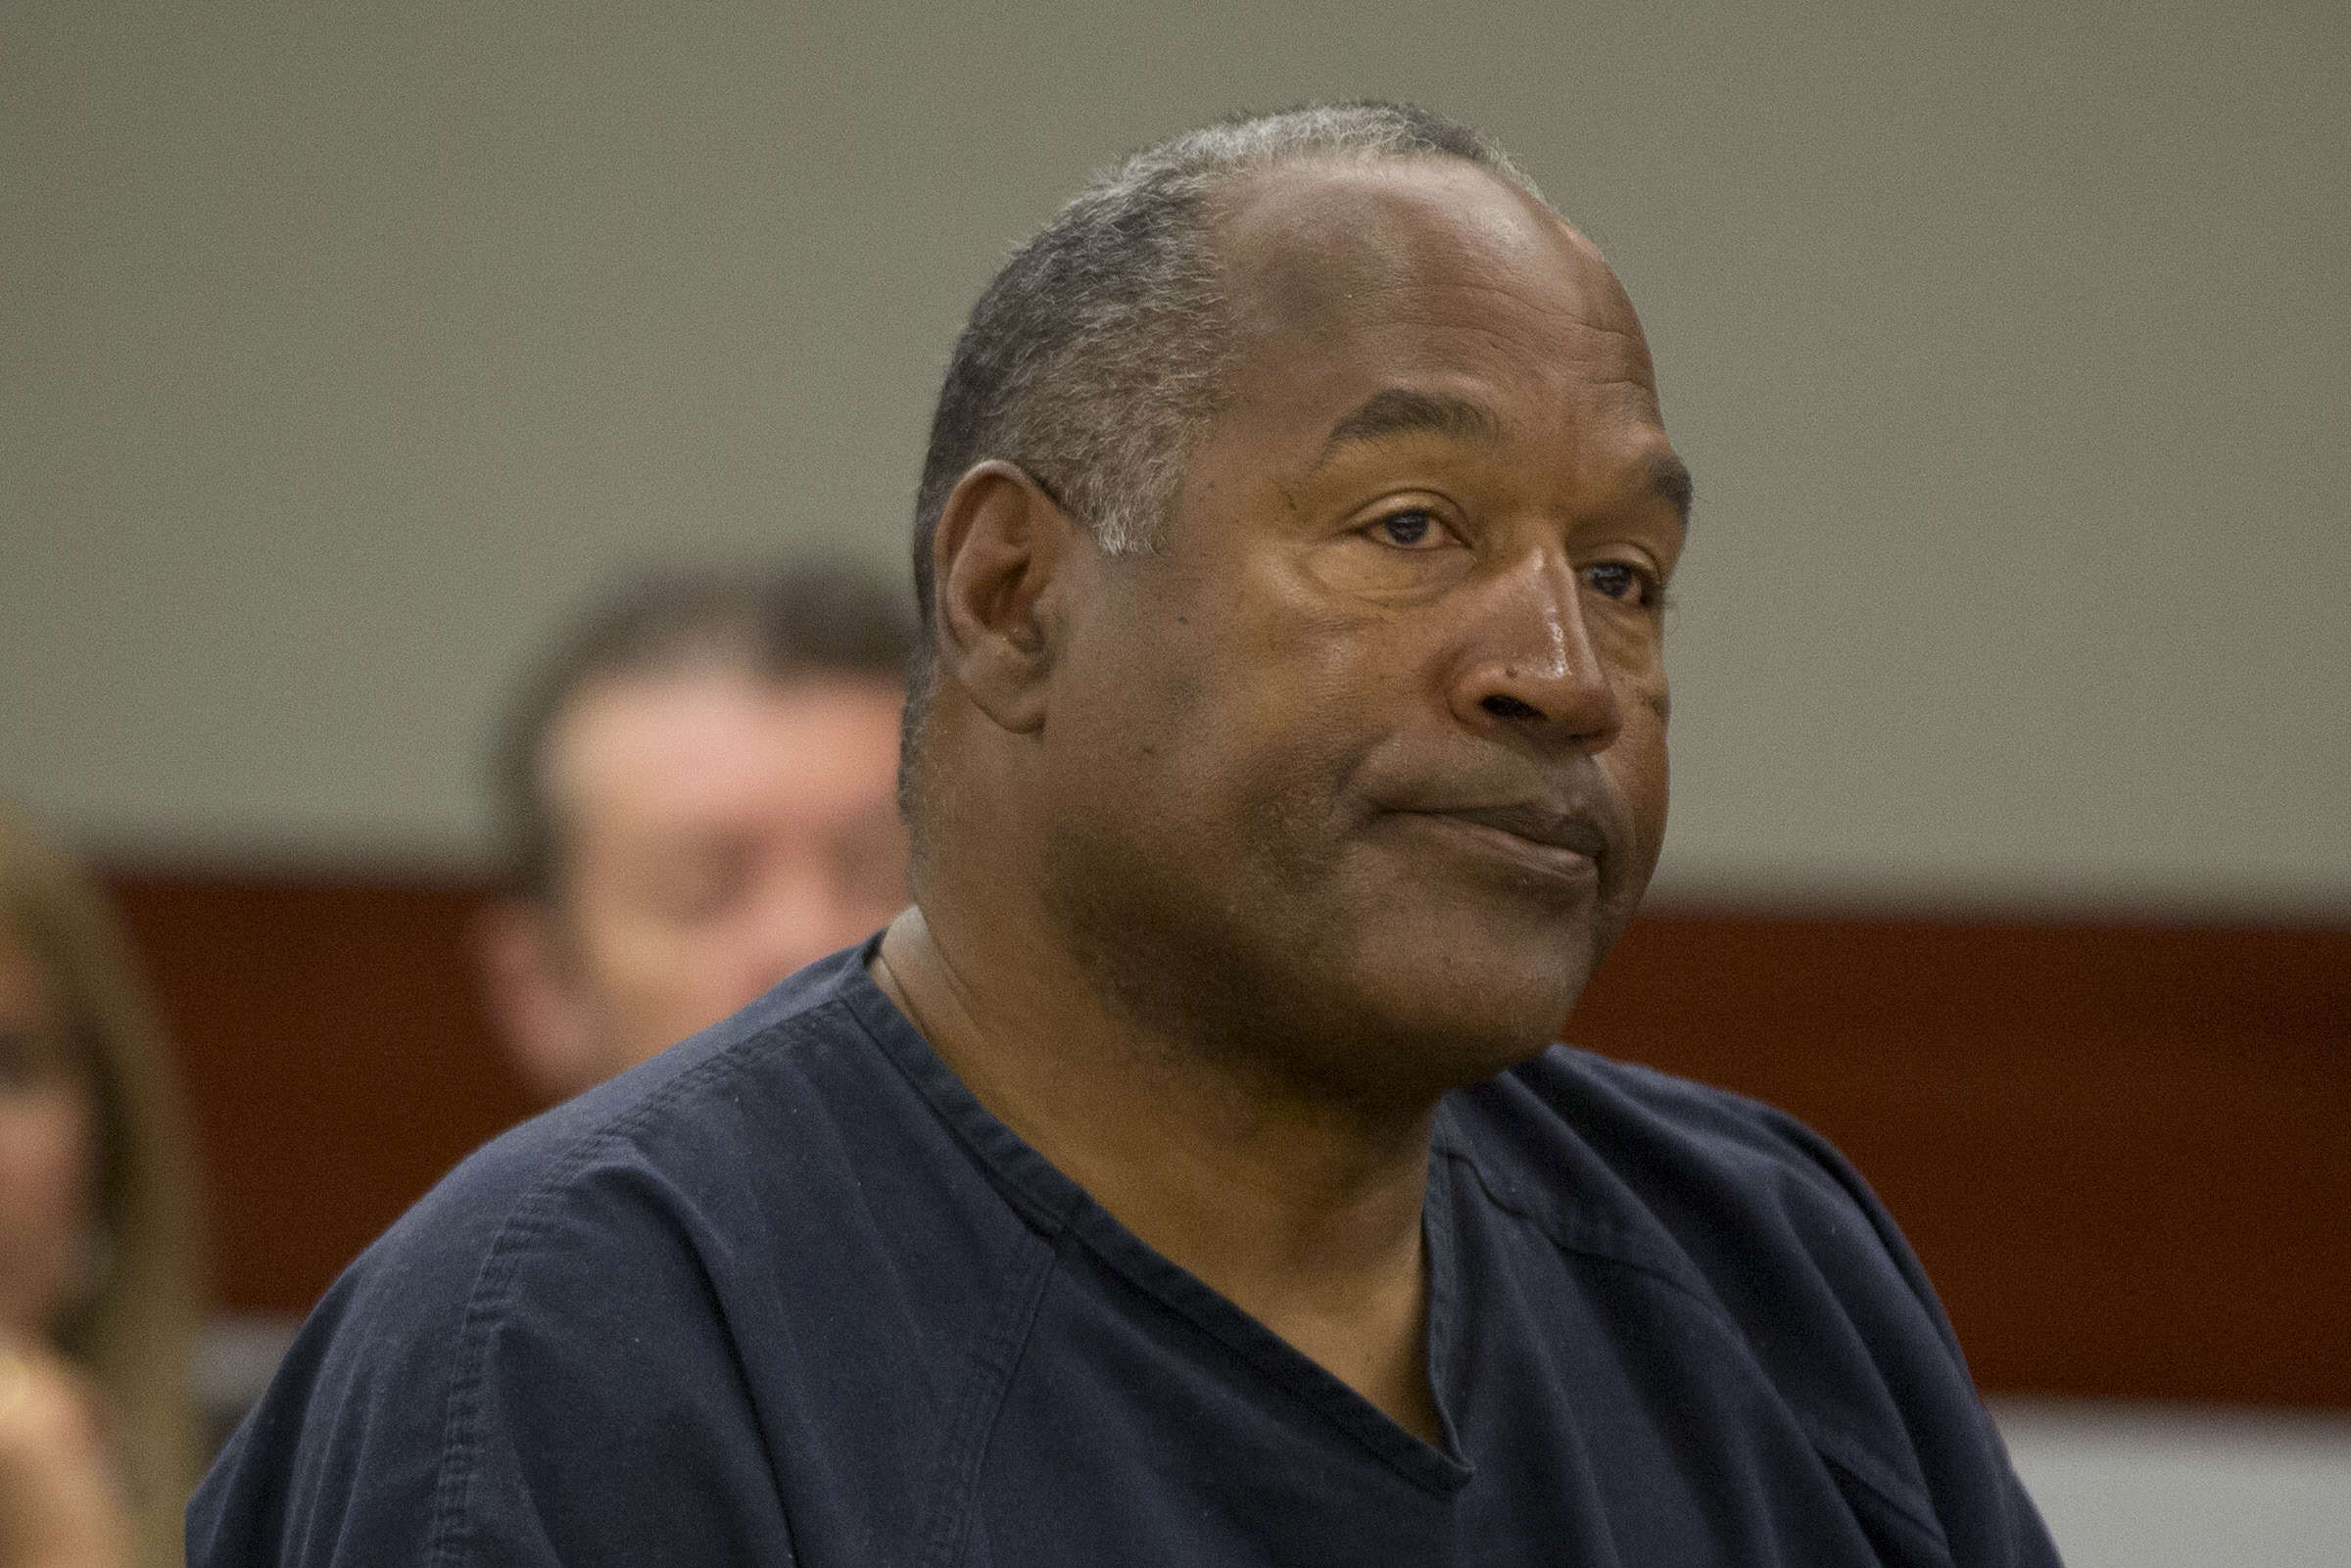 ojsimpson1 O.J. Simpson Could Be About To Confess To 1994 Murder